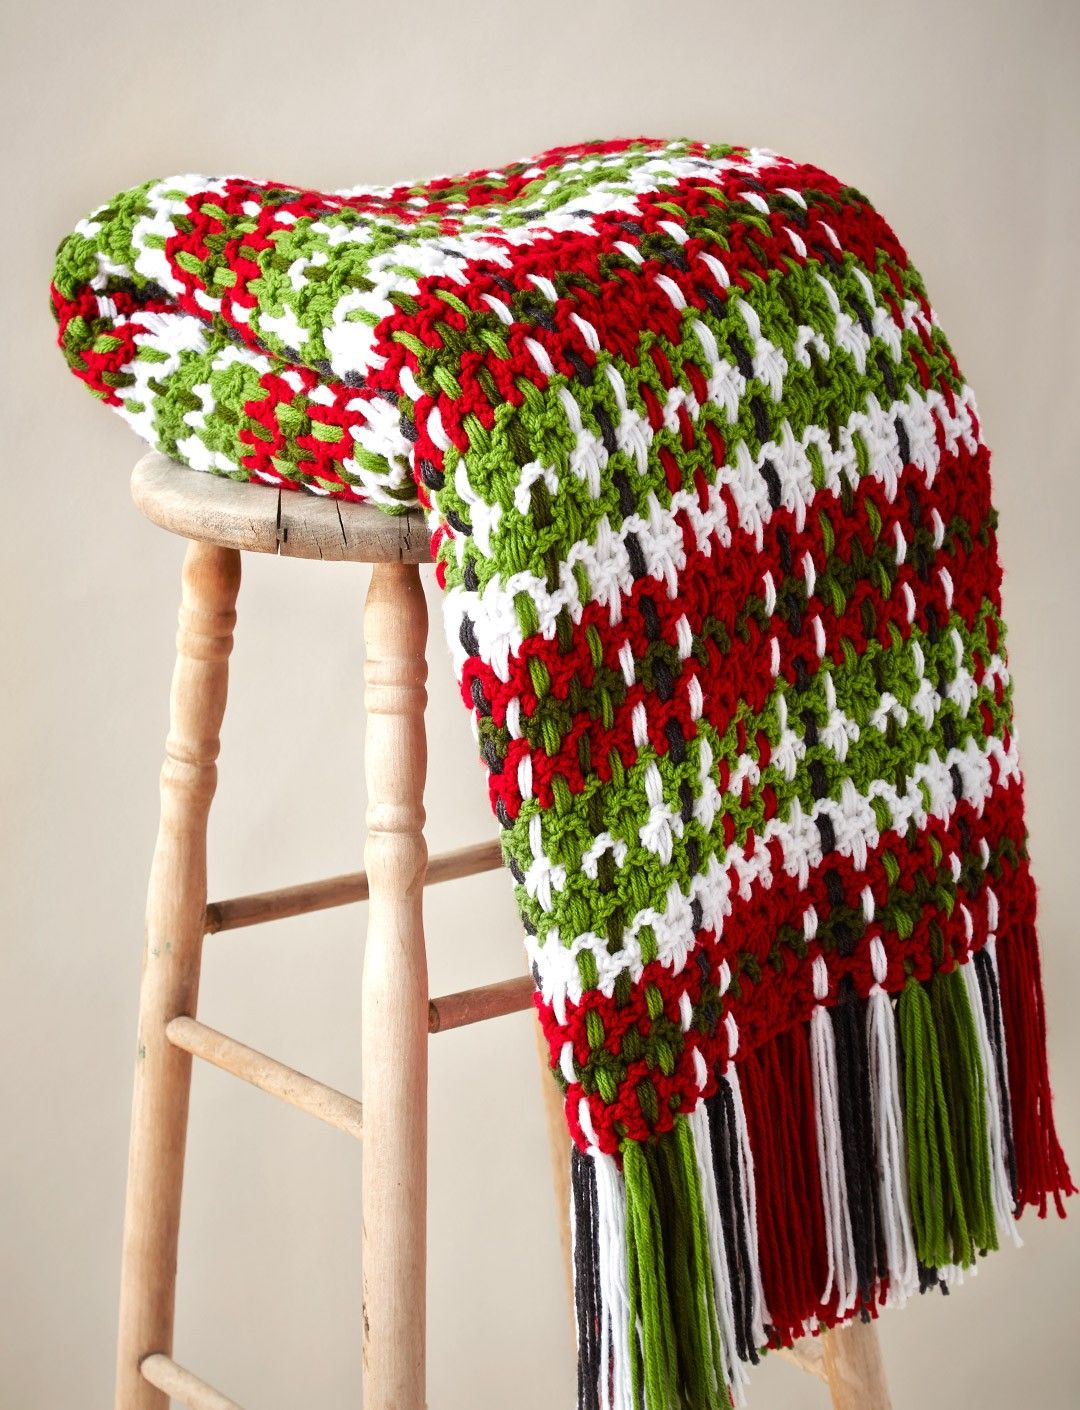 Woven Plaid Blanket | Crochet Blankets | Pinterest | Manta ...